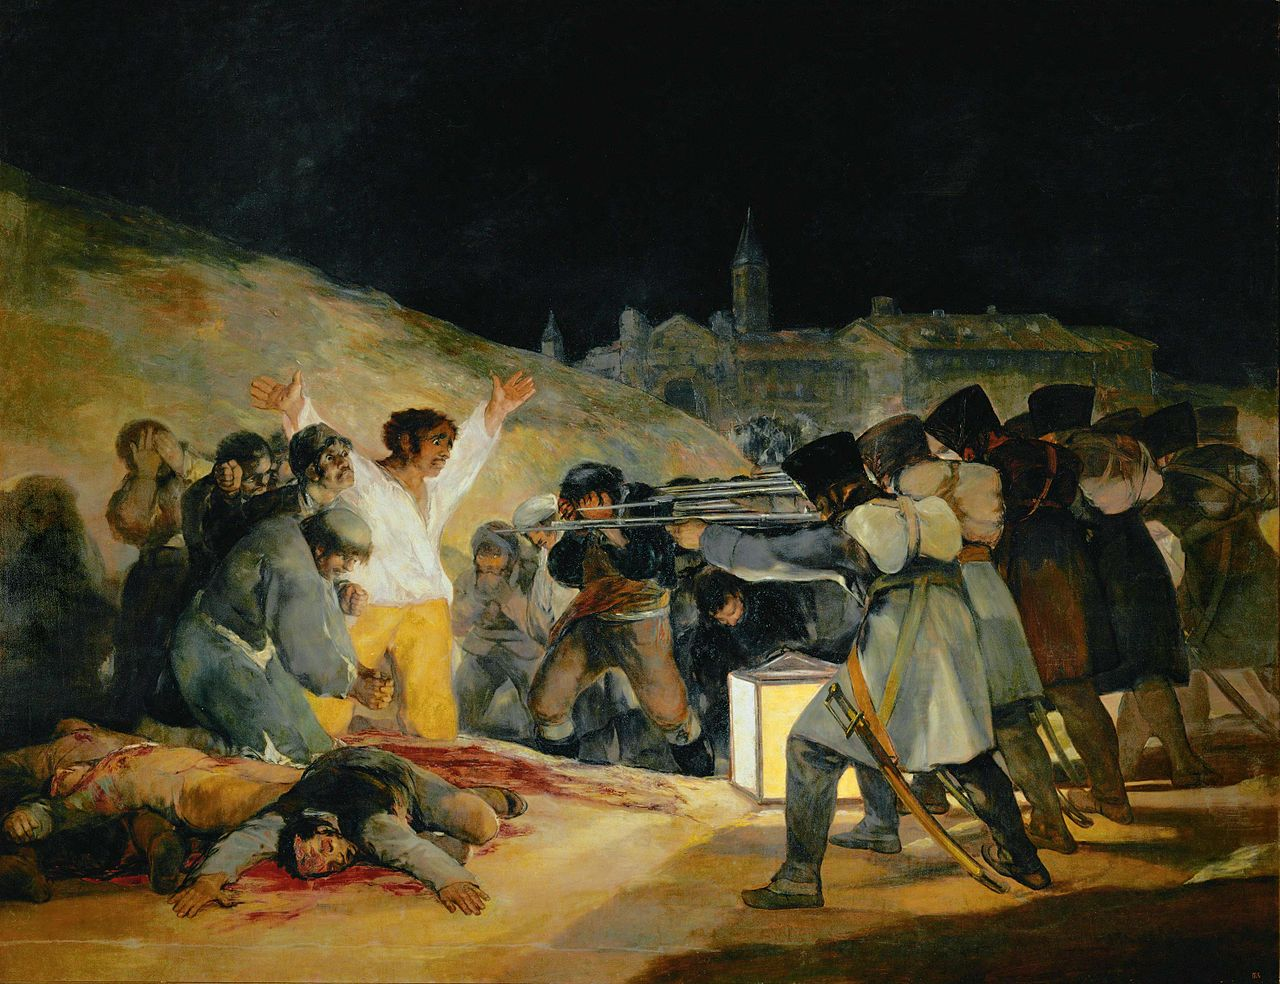 Goya's The Third of May, 1808 (1814)